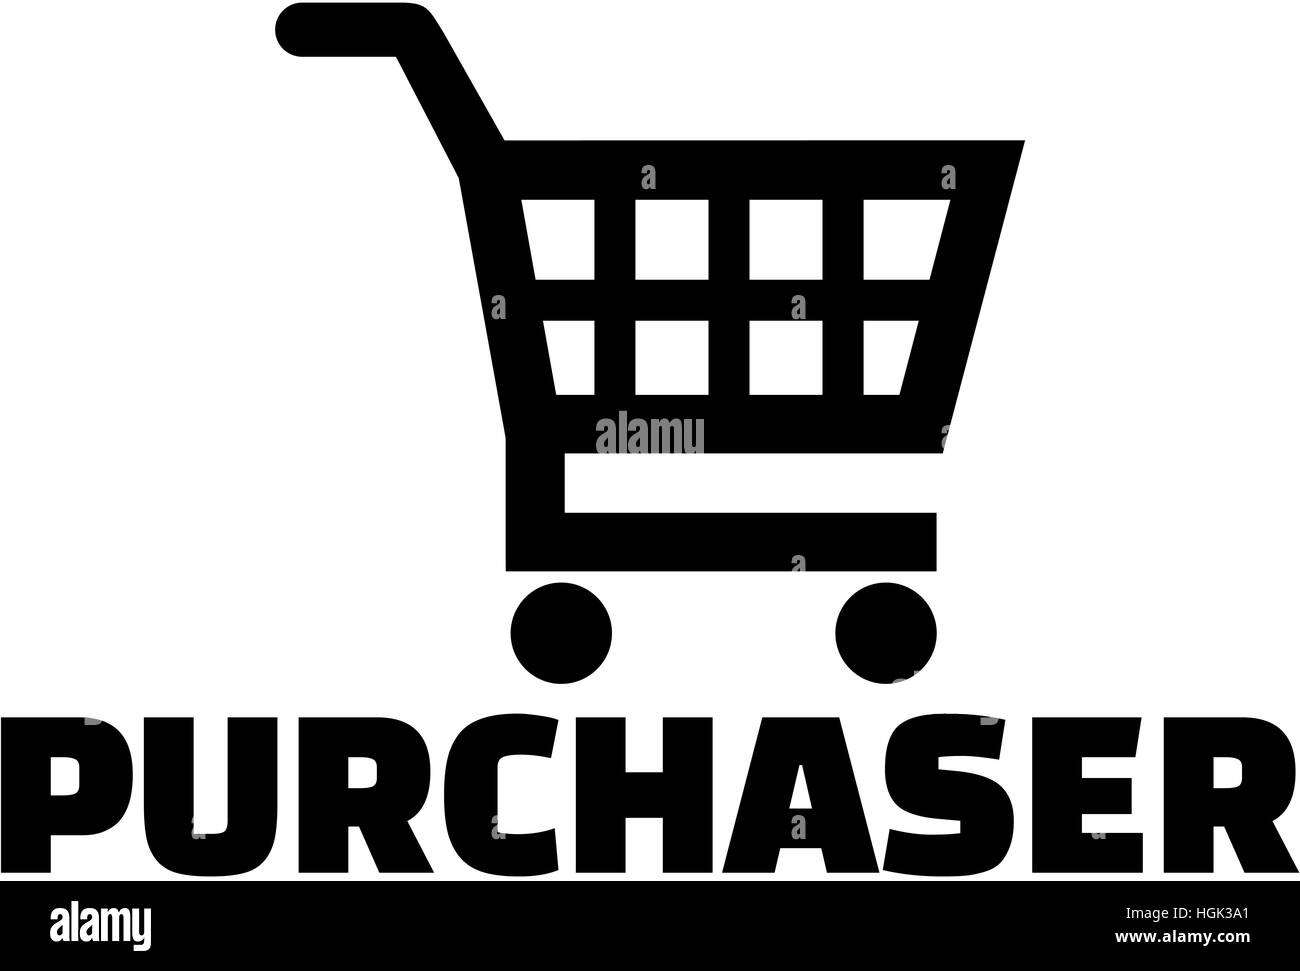 Purchaser with shopping cart icon - Stock Image